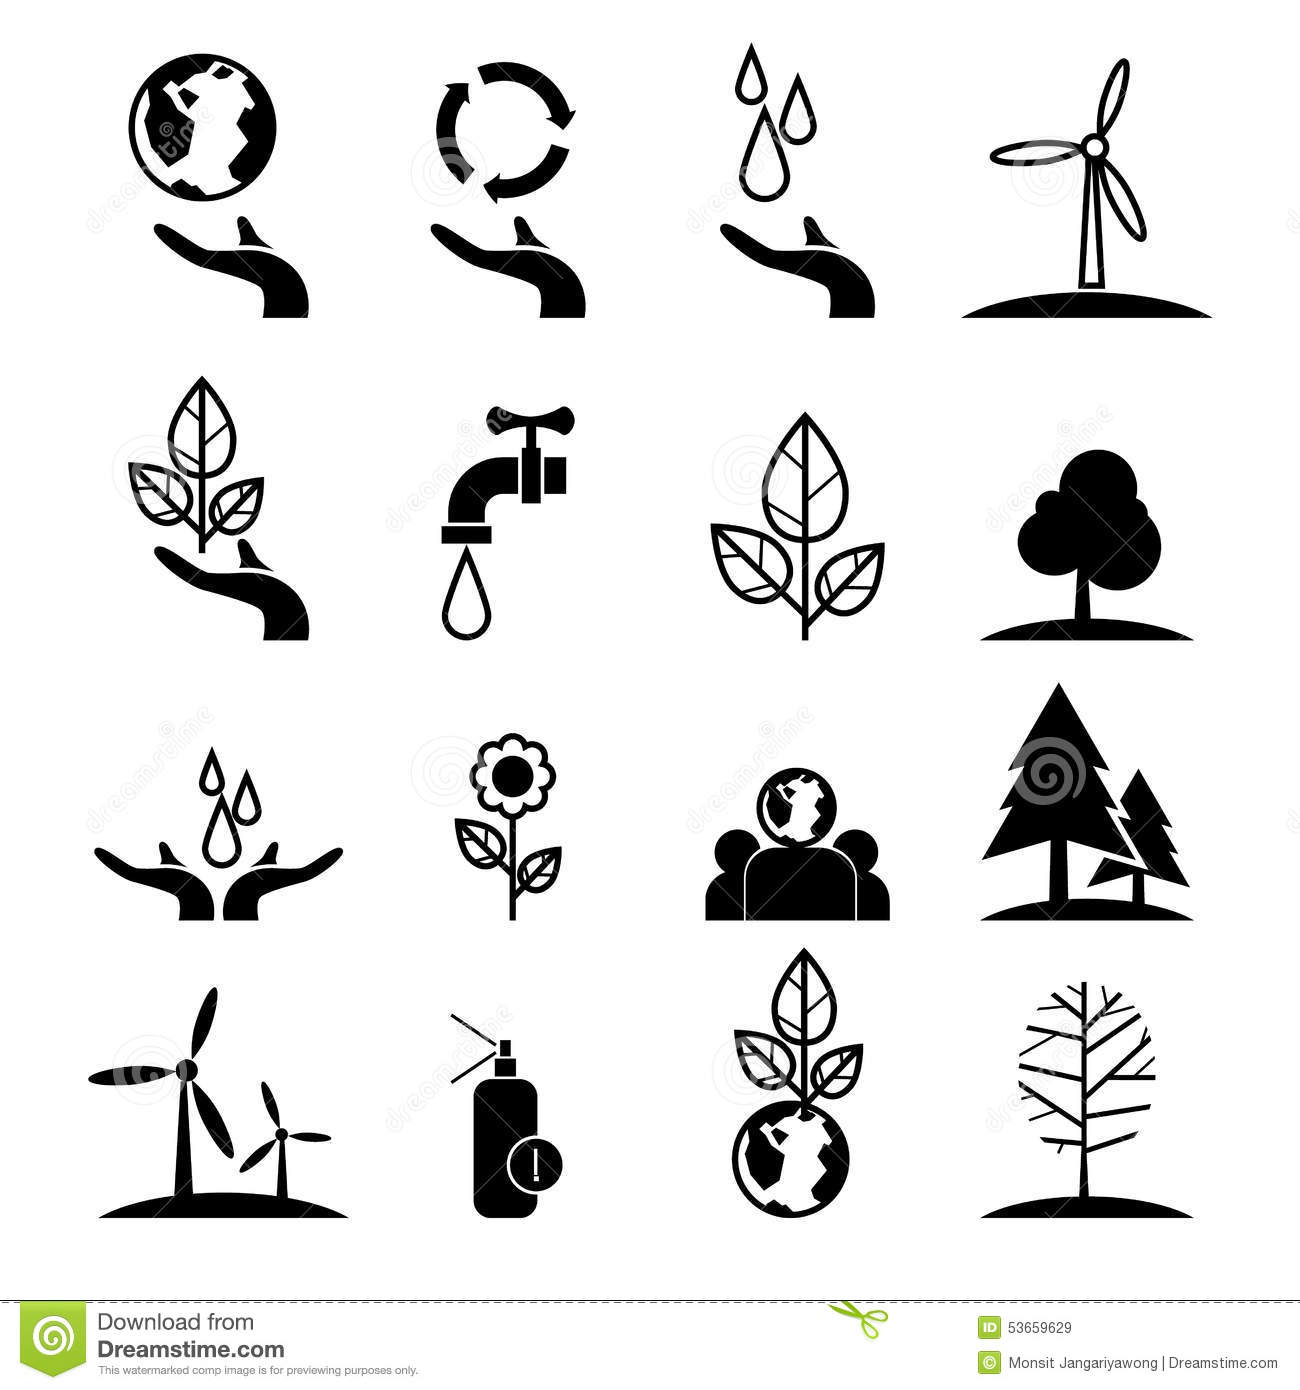 Clipart on save energy save environment clipart royalty free Save energy save environment clipart - ClipartFox clipart royalty free